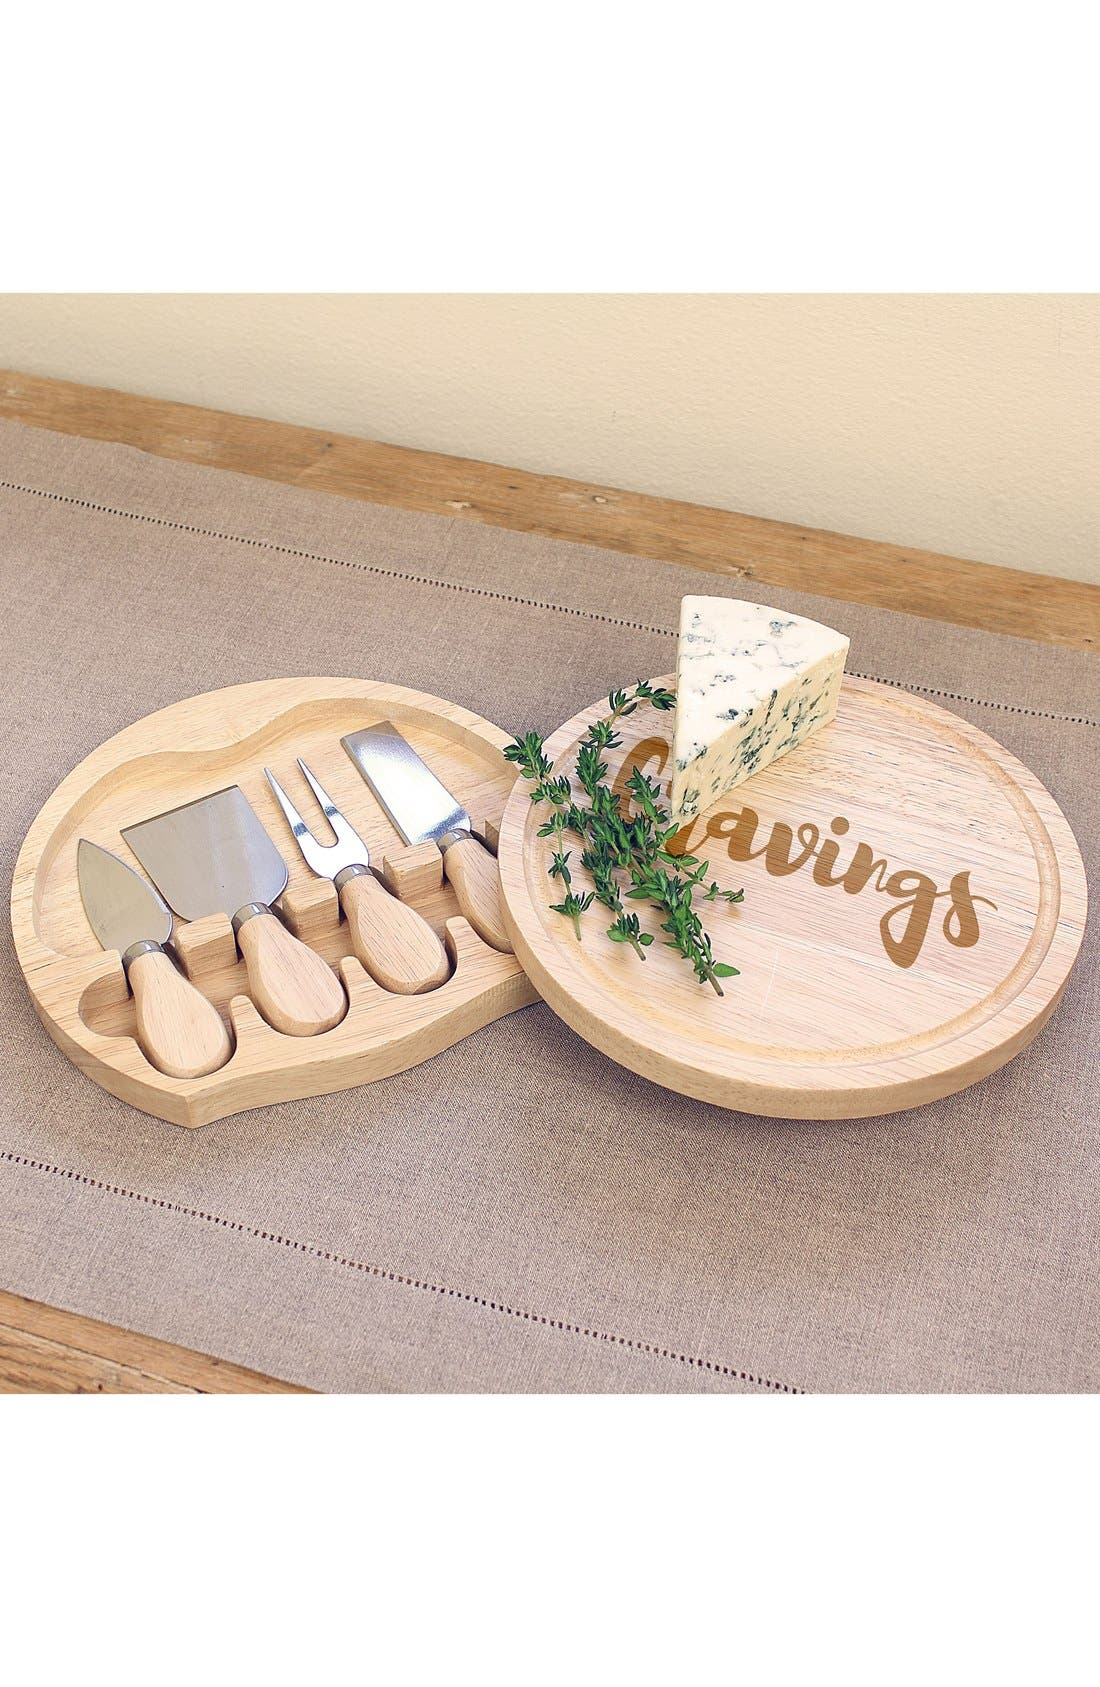 Main Image - Cathy's Concepts 'Cravings' 5-Piece Cheese Board & Utensil Set